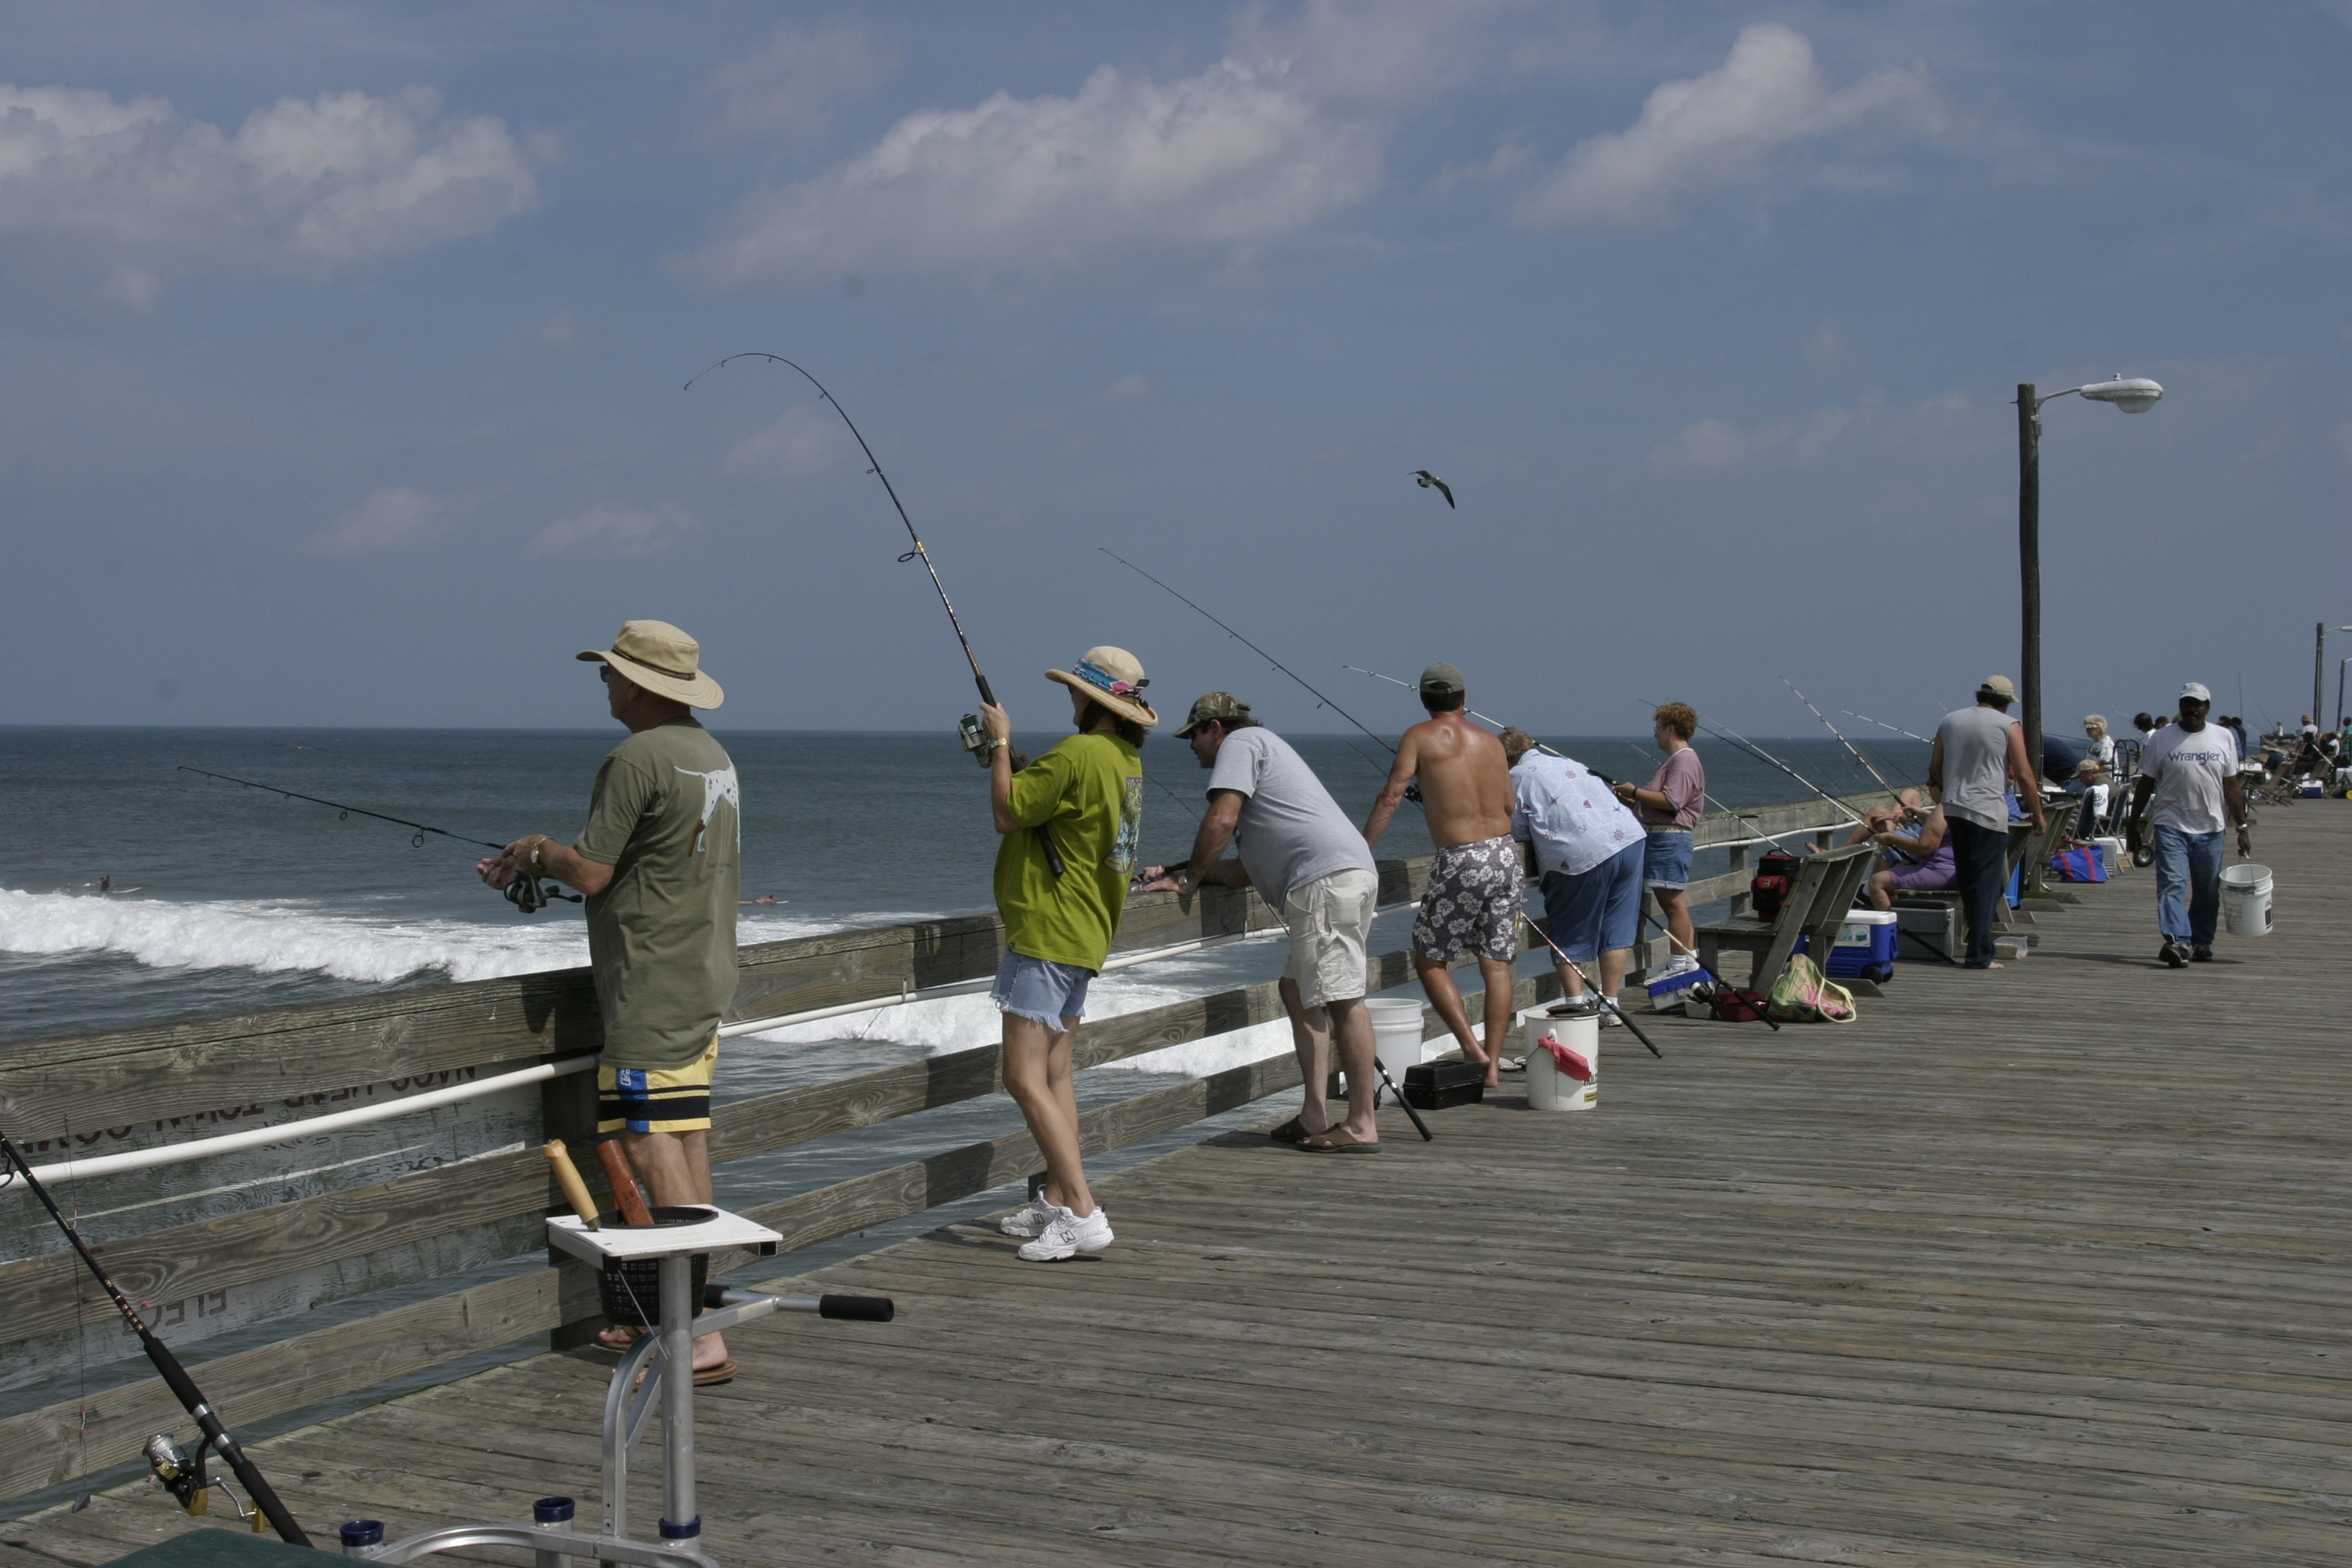 People fishing from pier by della stock on deviantart for Videos of people fishing